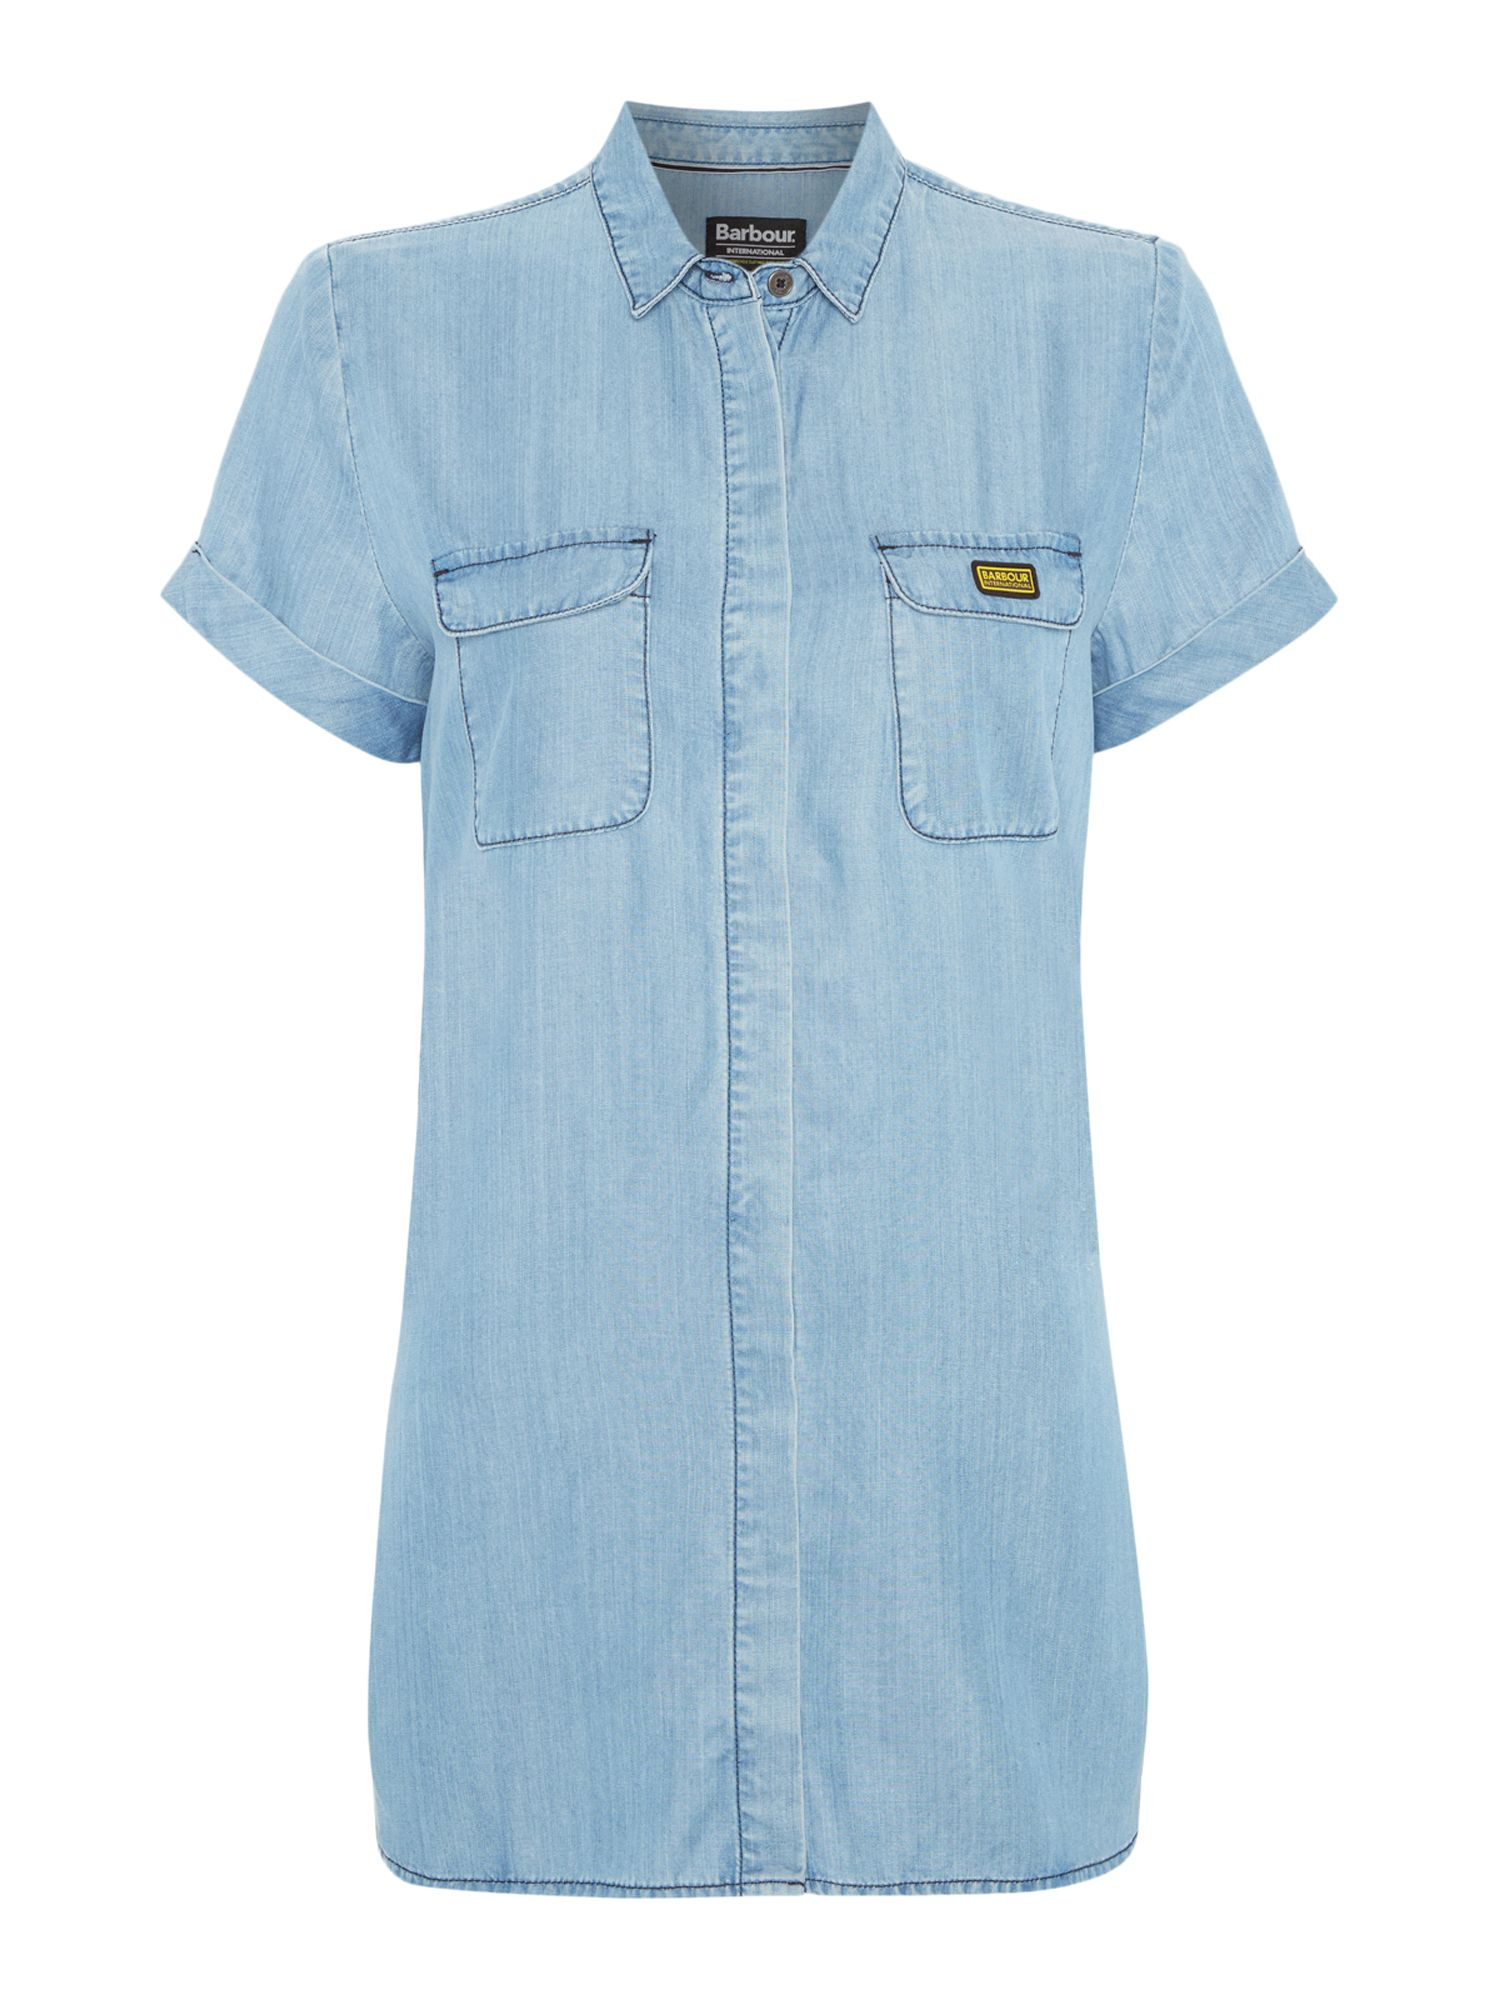 Barbour Barbour International Blyton shirt with sleeves, Chambray